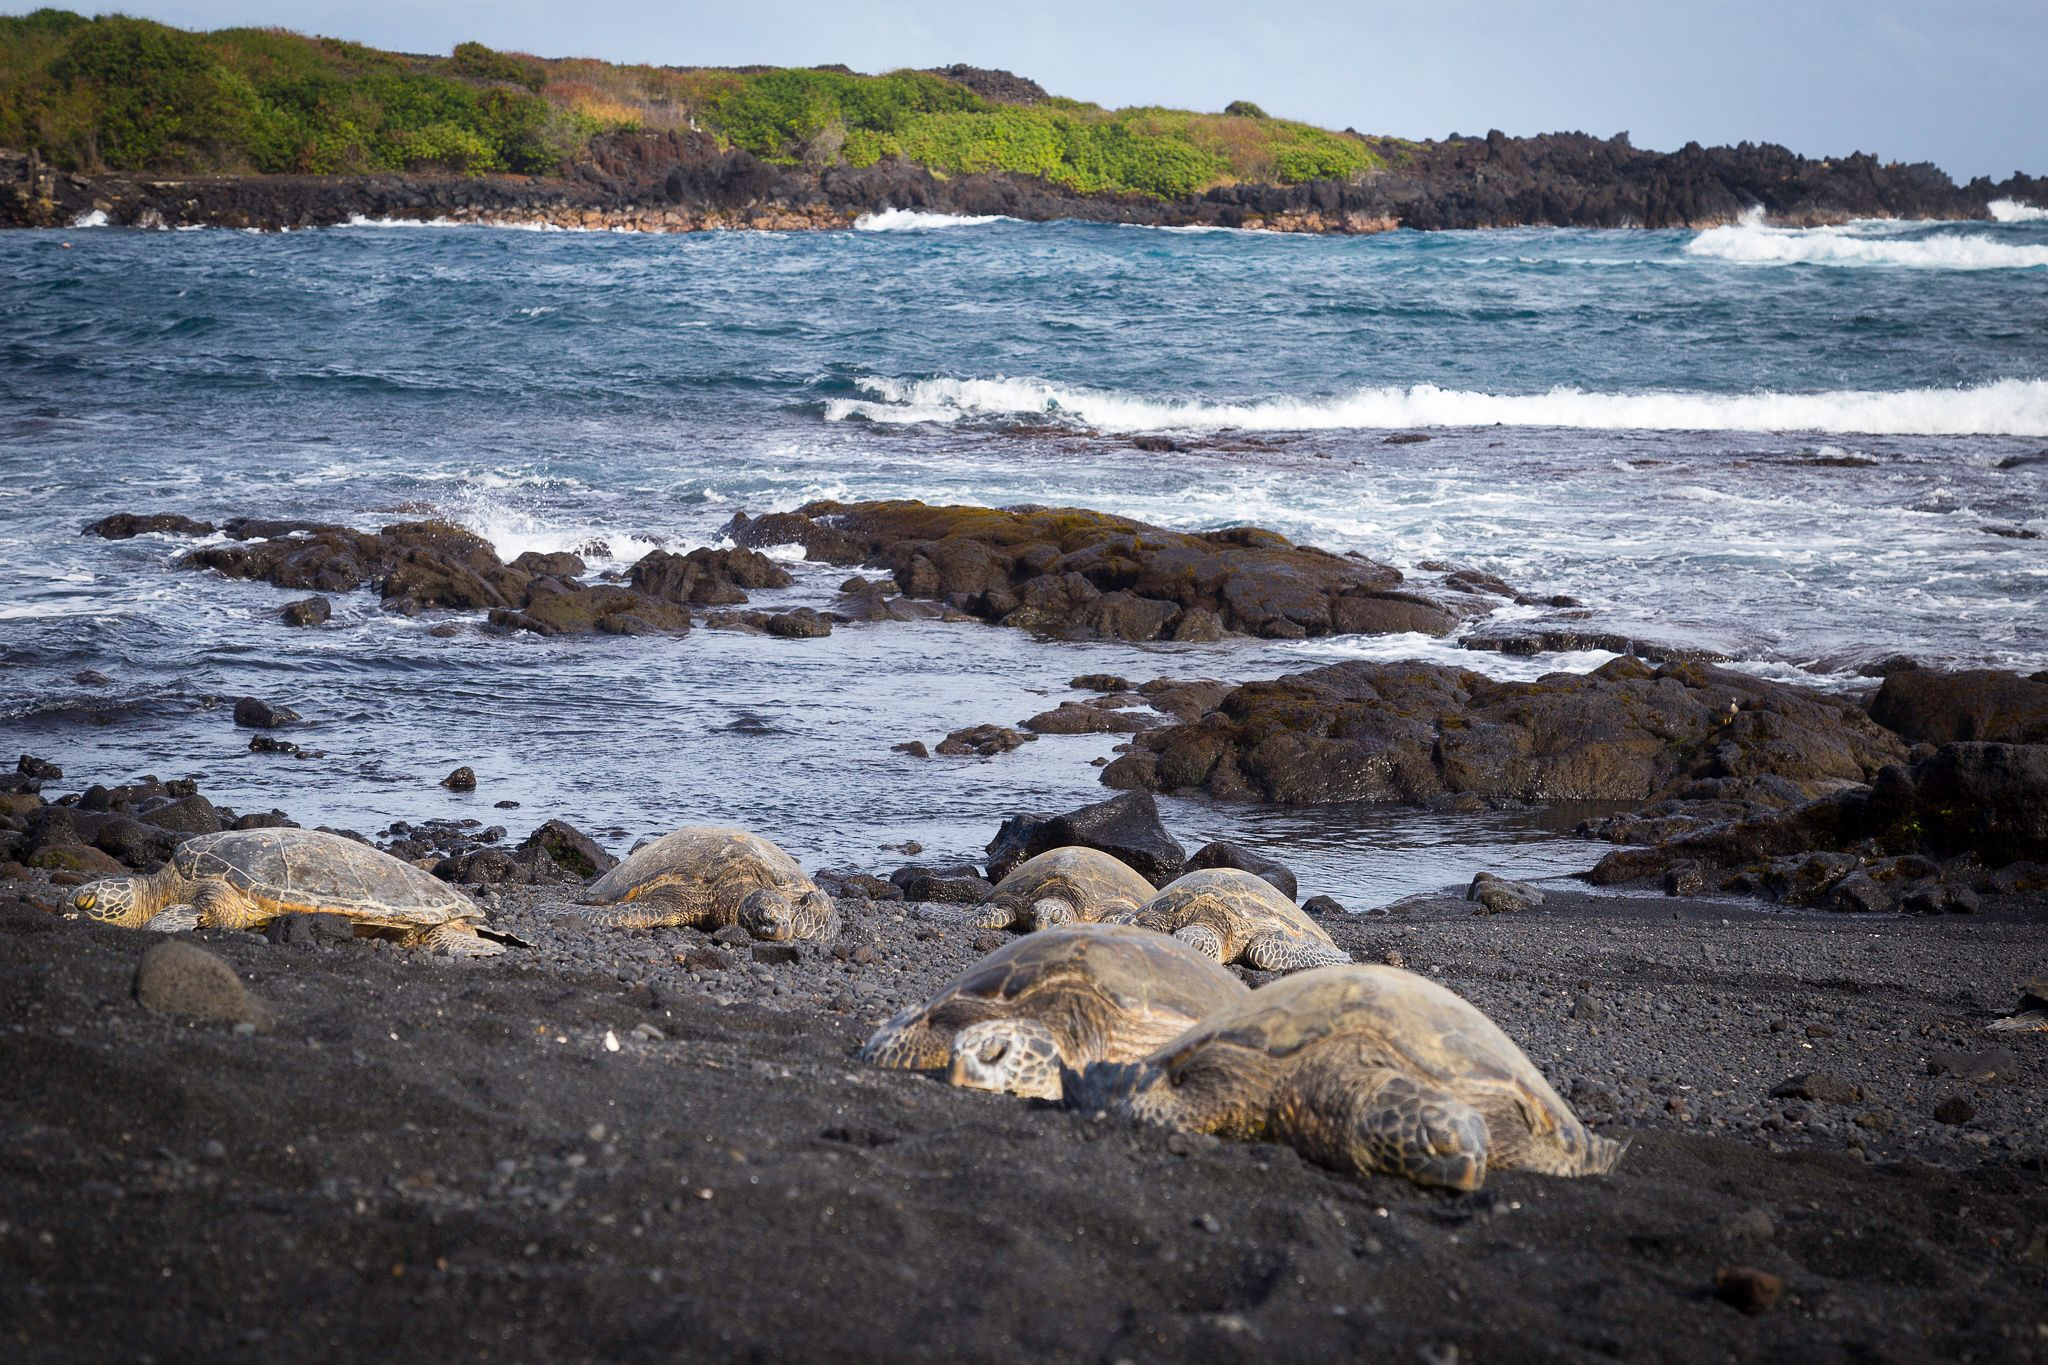 Turtles lounging at black sand beach with ocean in the background.